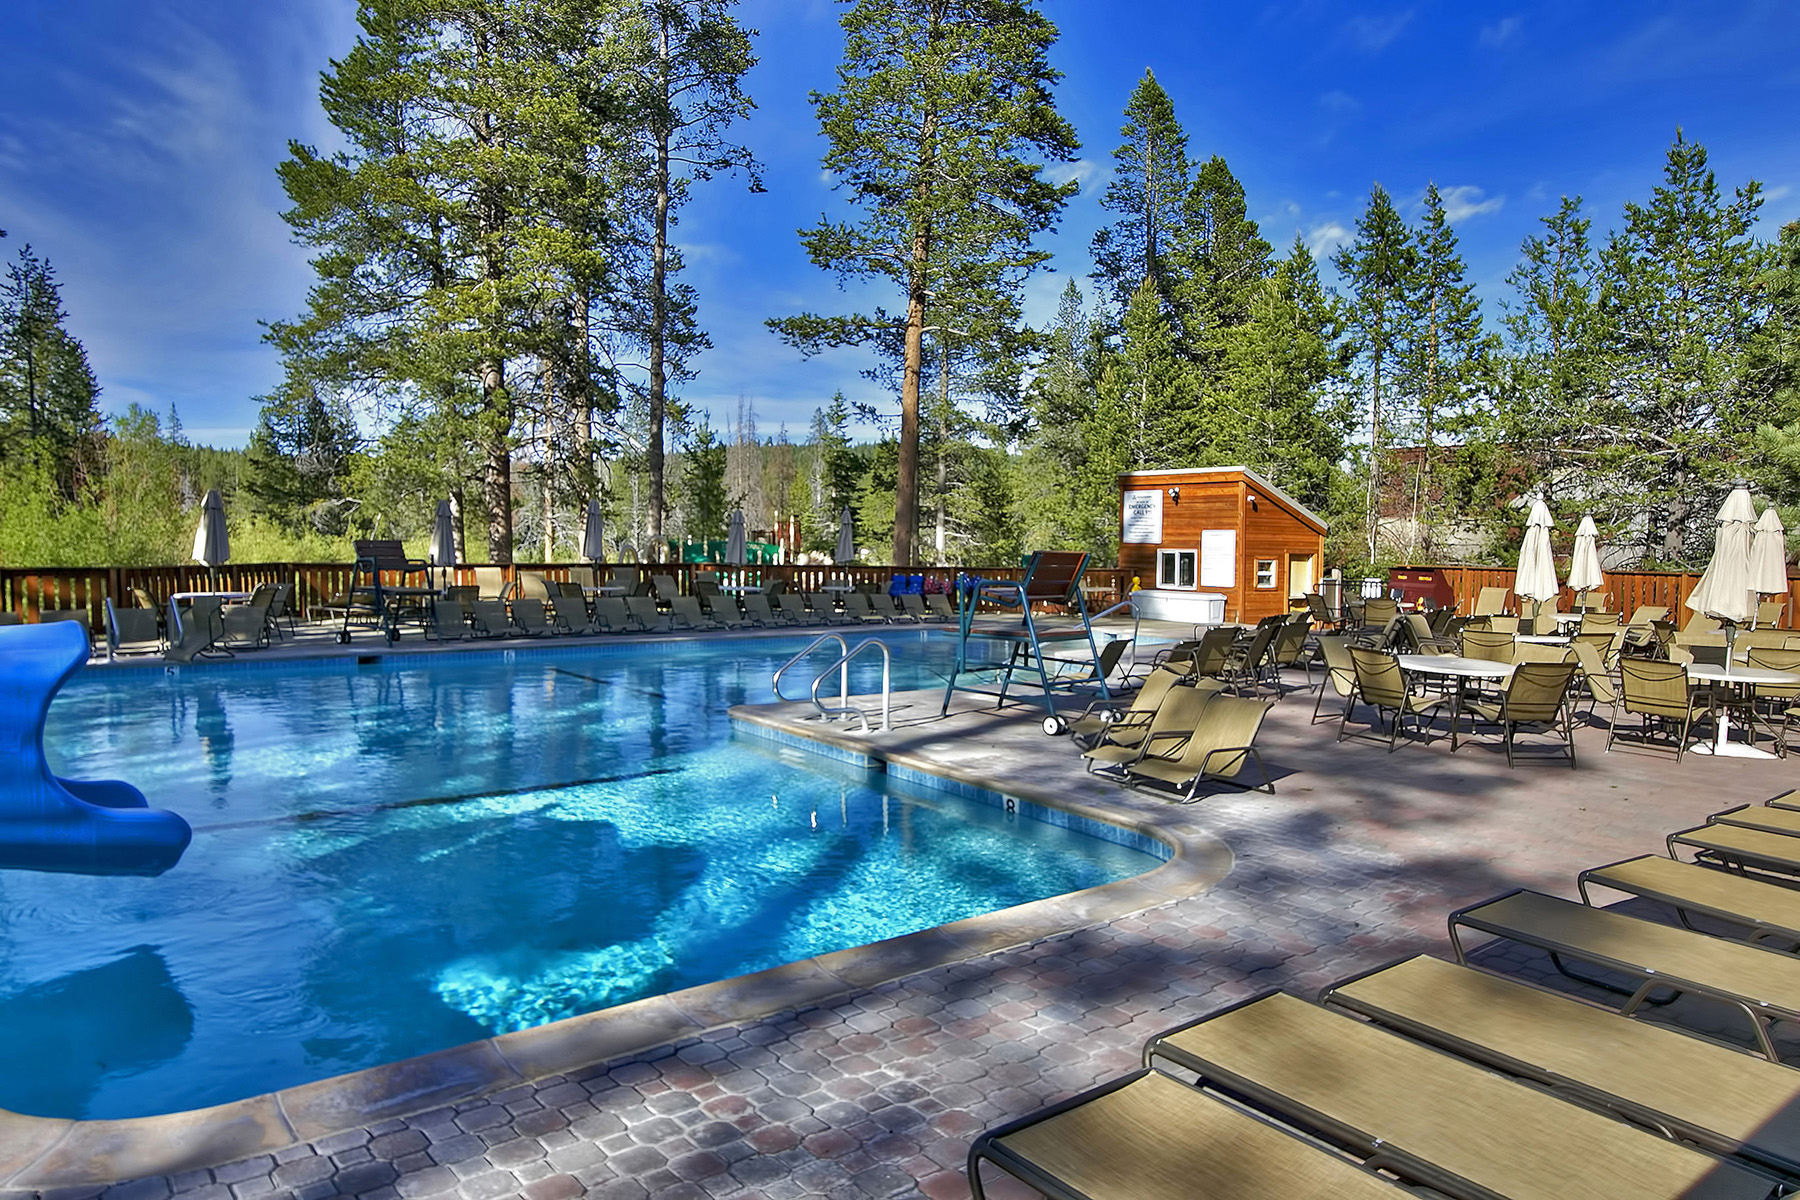 Additional photo for property listing at 14141 Tyrol Road, Truckee, CA 14141 Tyrol Road Truckee, California 96161 United States